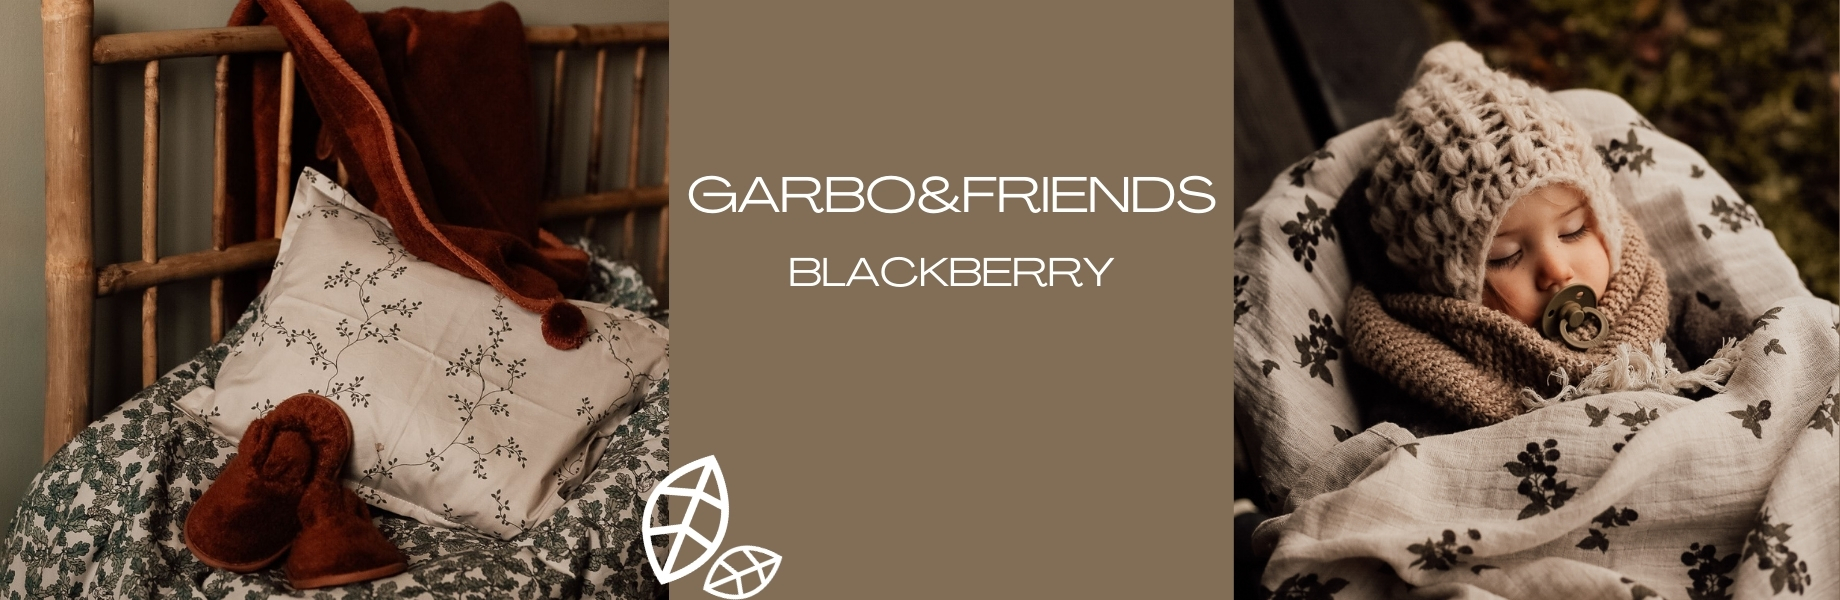 GARBO&FRIENDS BLUEBERRY